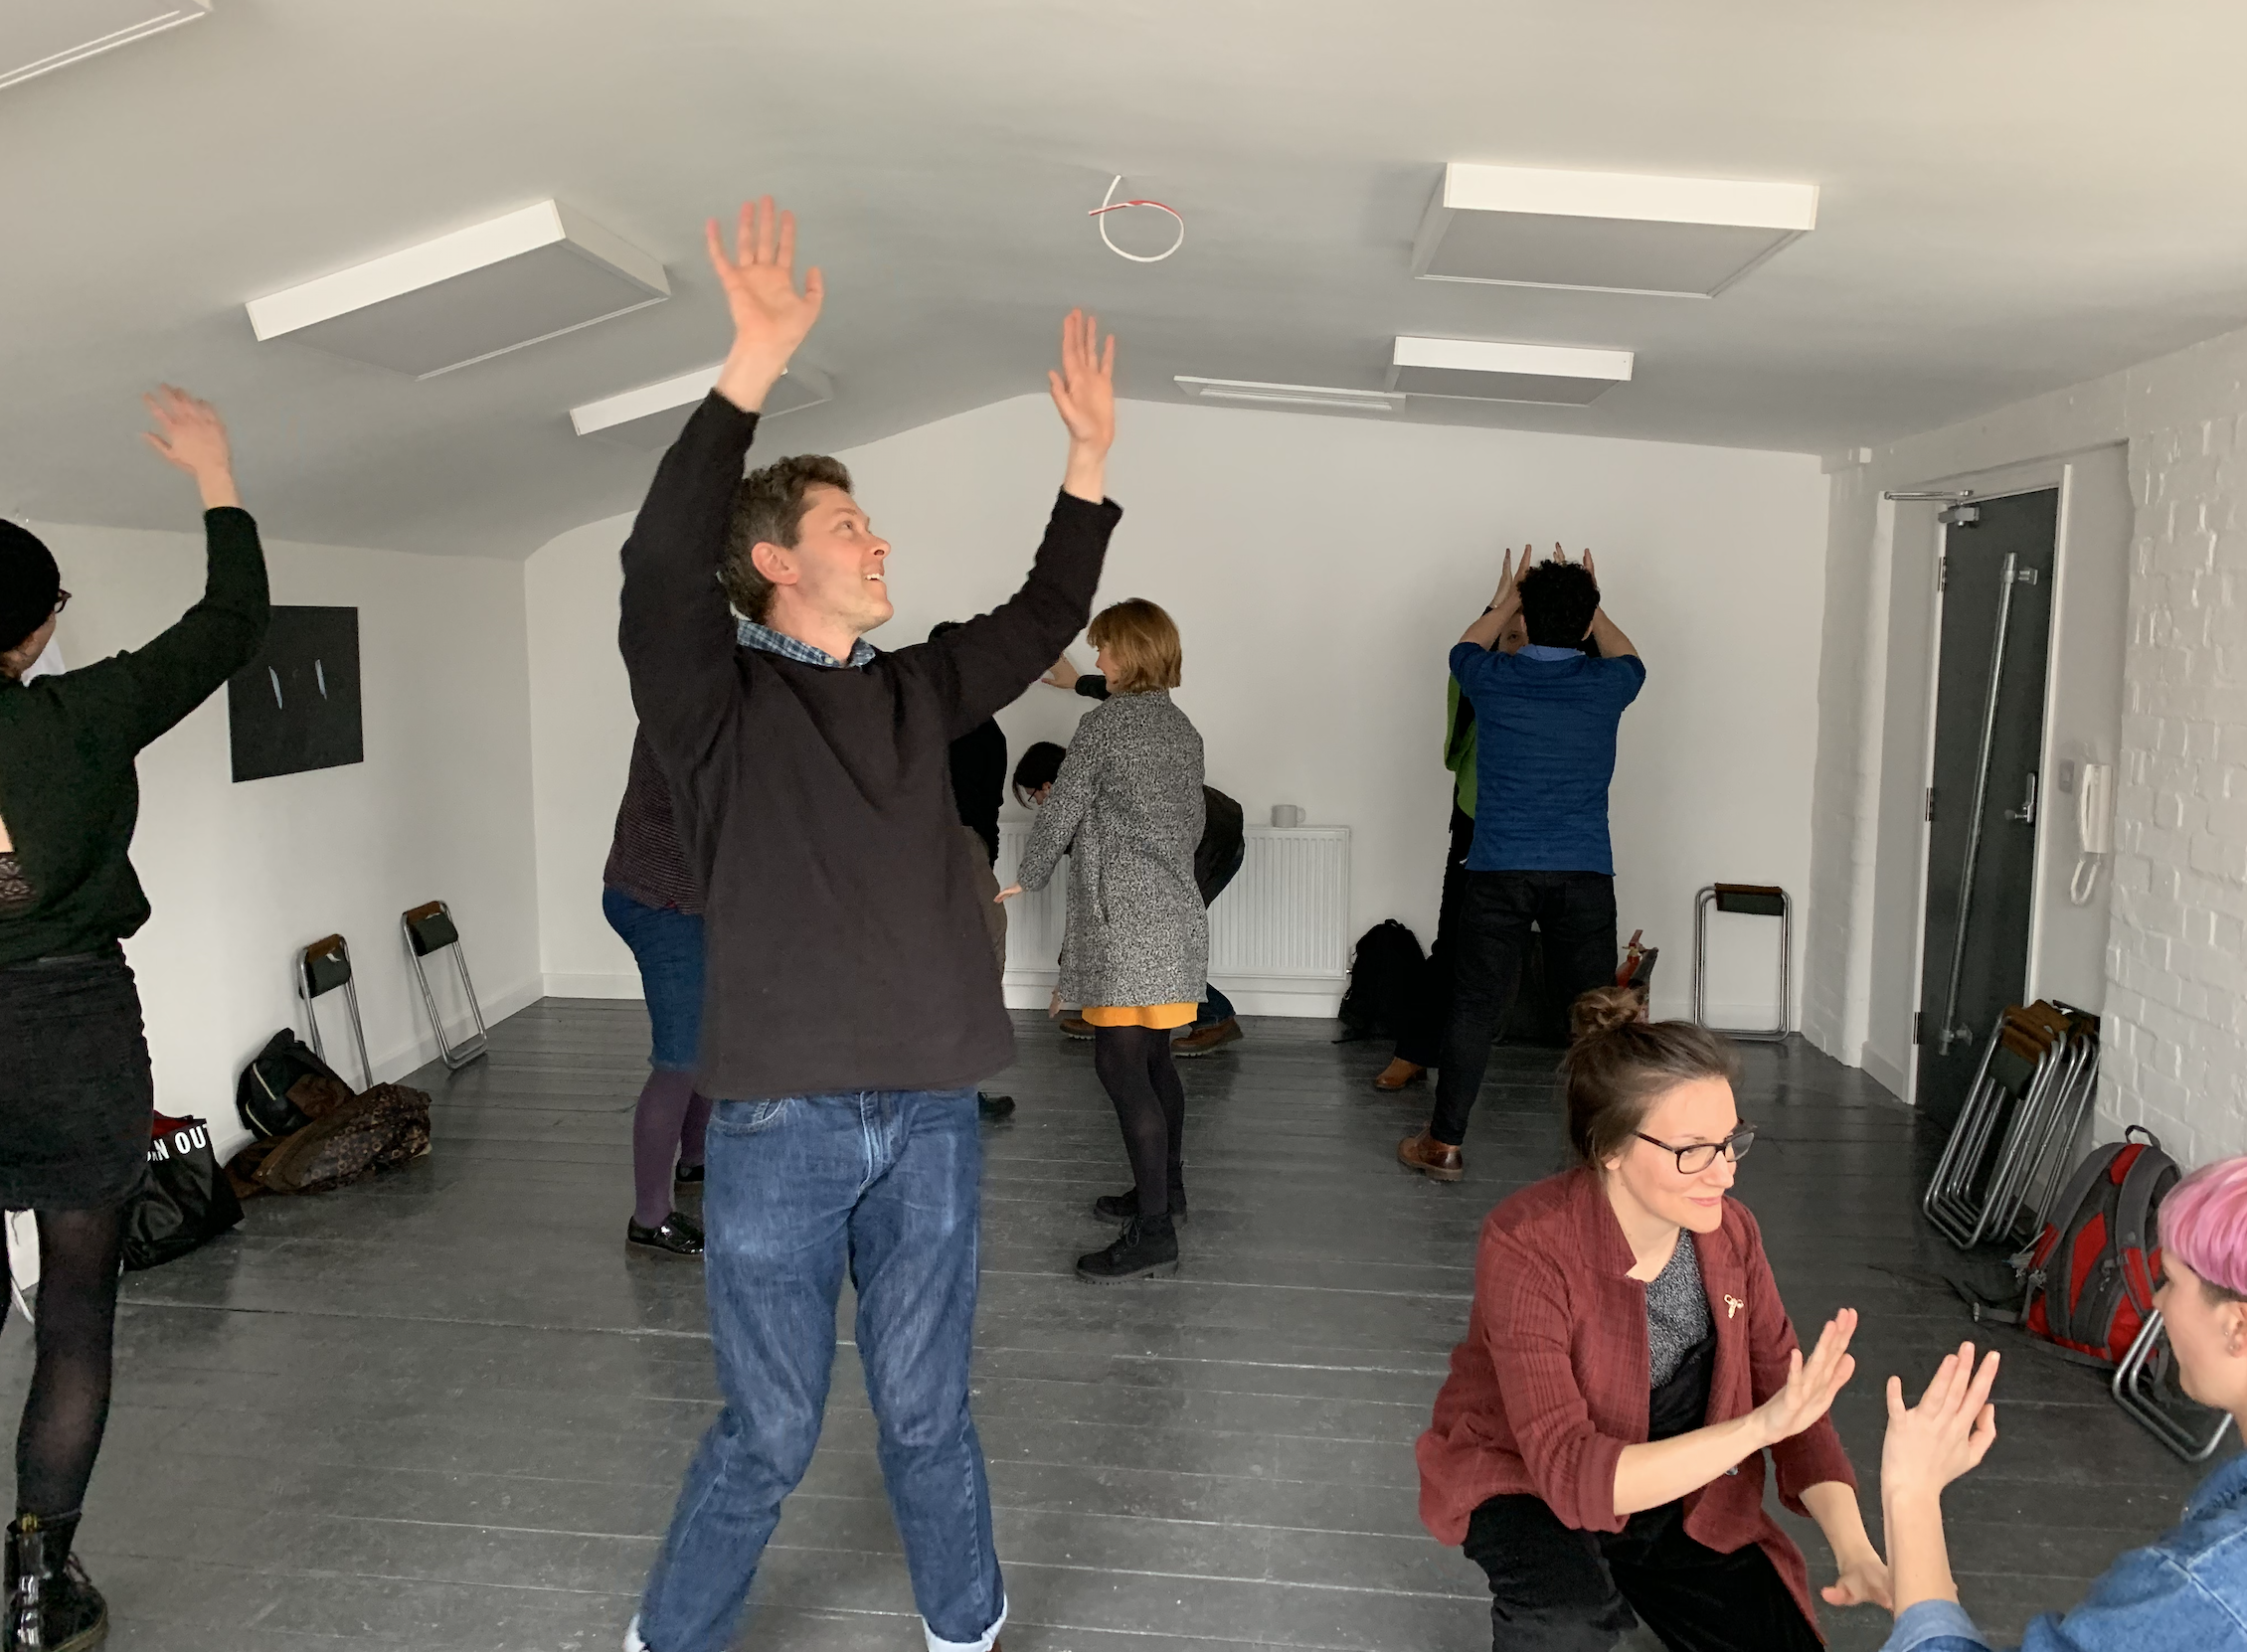 Scratch version of The Future Has Been In Touch shown at Kaleider's Mikrofest, March 2019